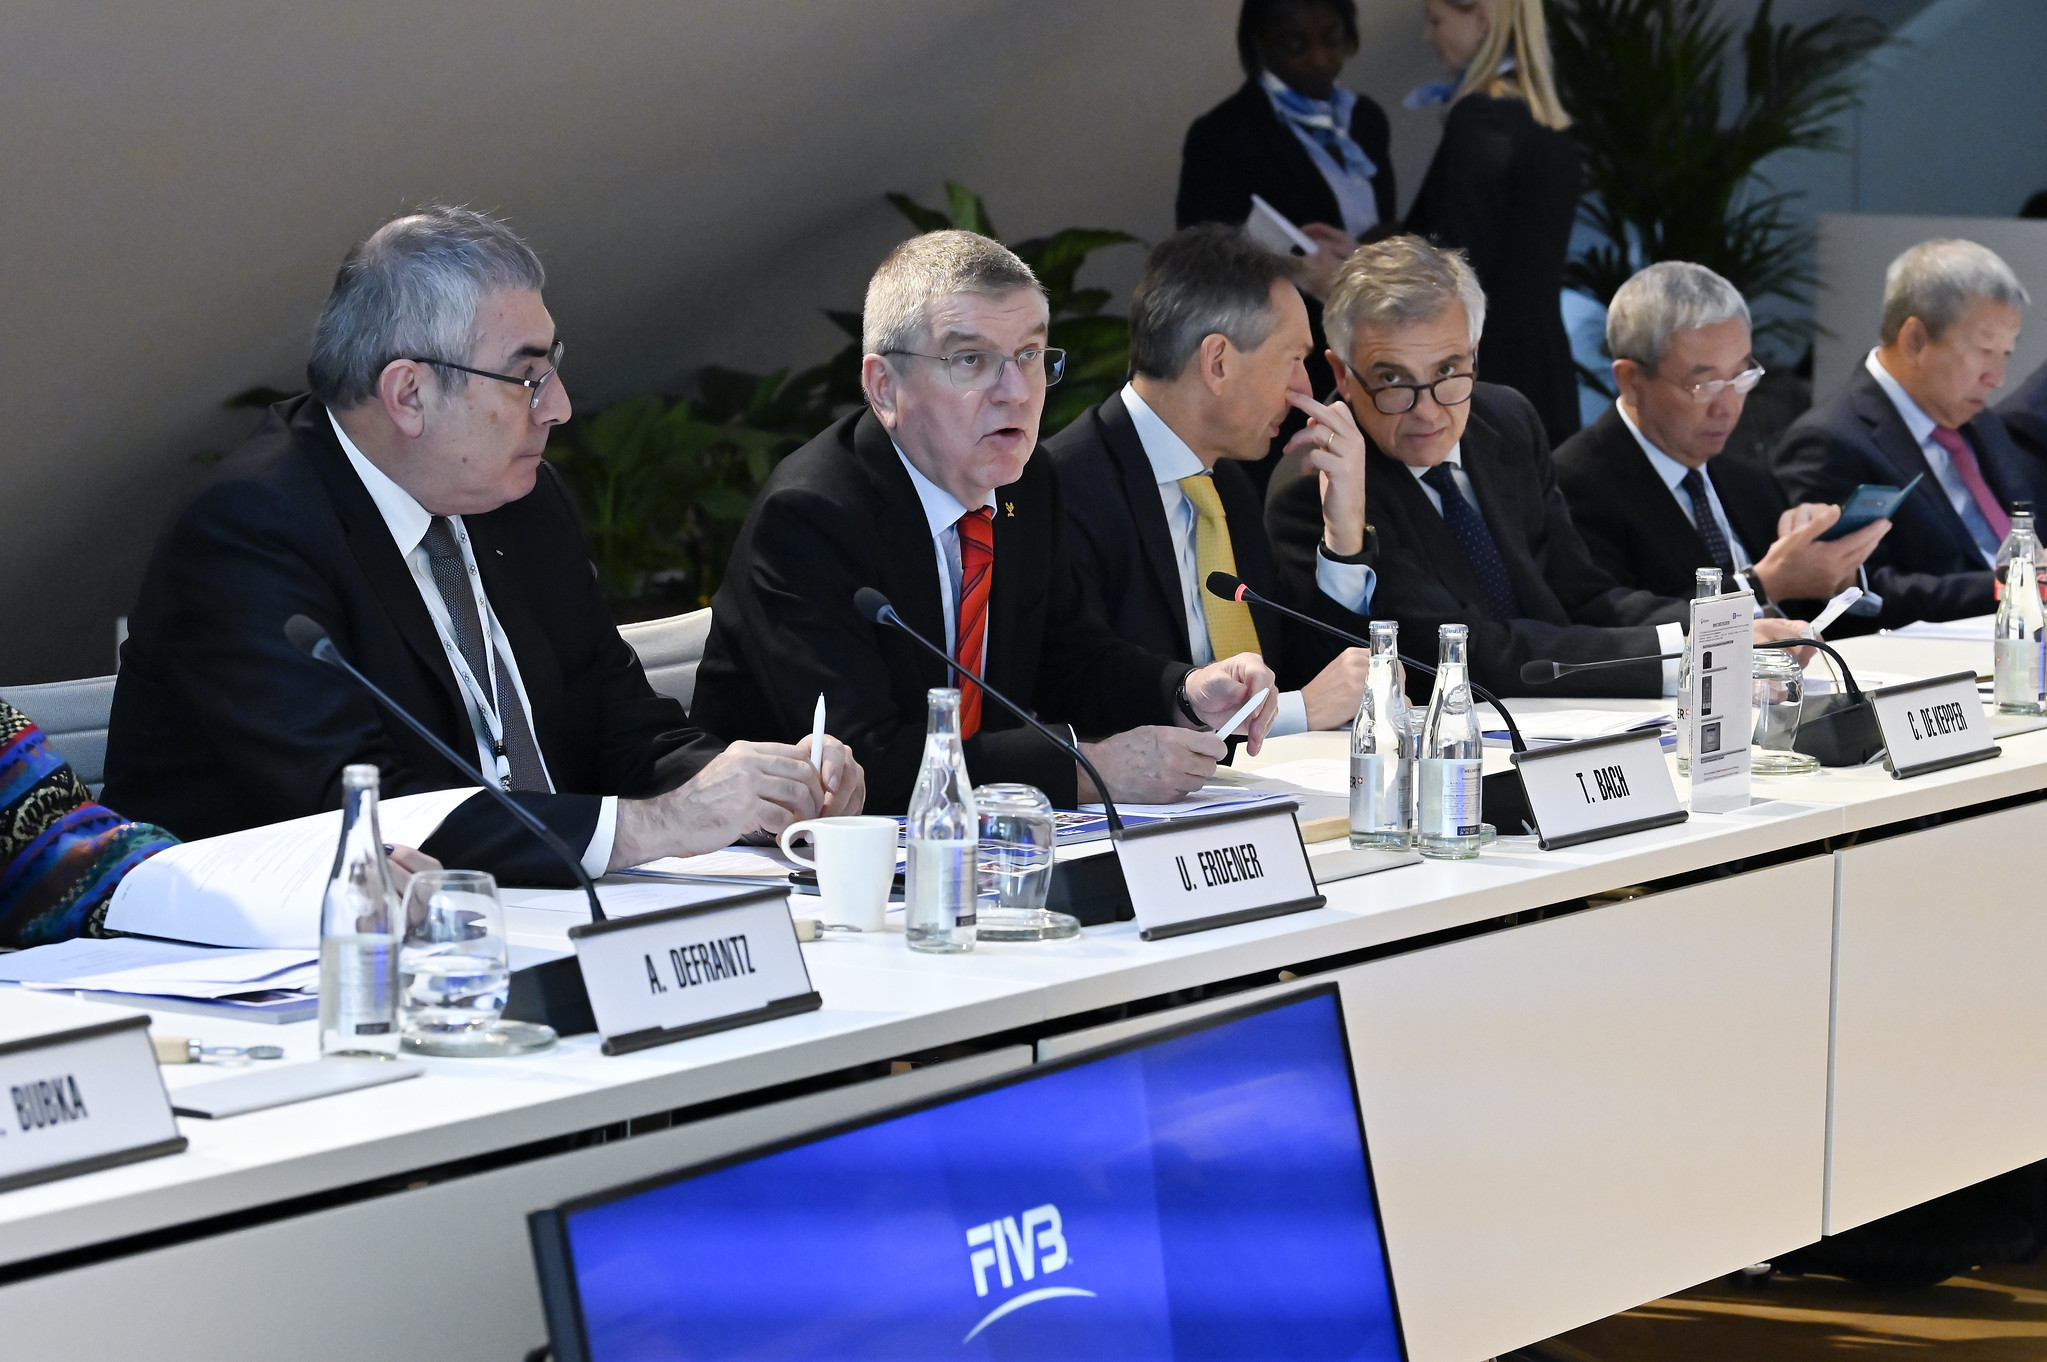 IOC President Thomas Bach praised the FIVB during the joint meeting ©FIVB